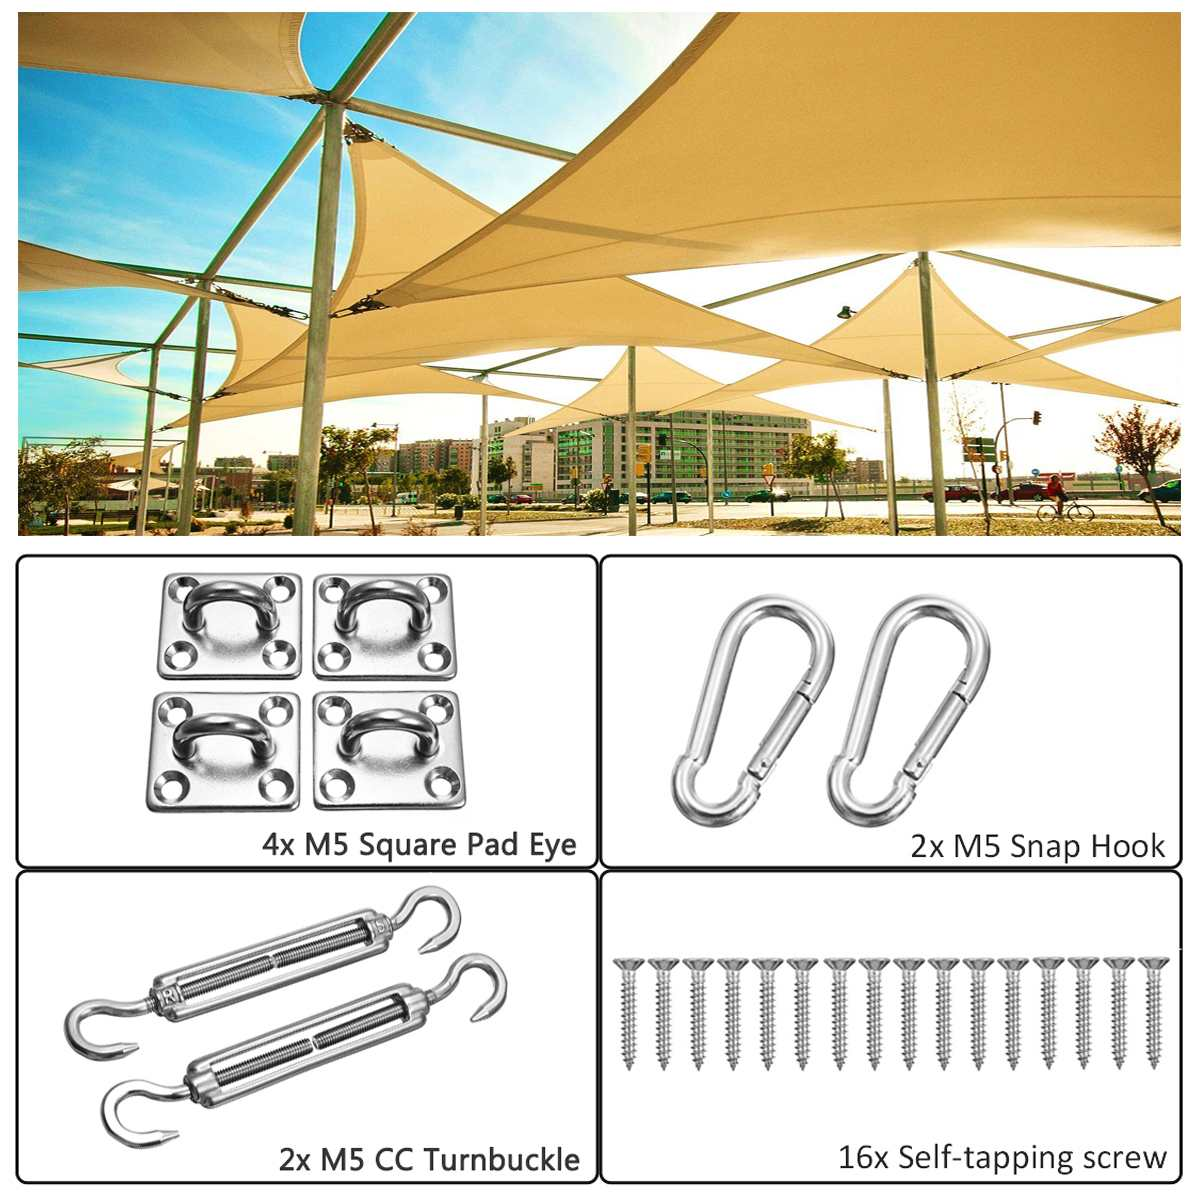 best top sun sail square ideas and get free shipping - d76jcdmm